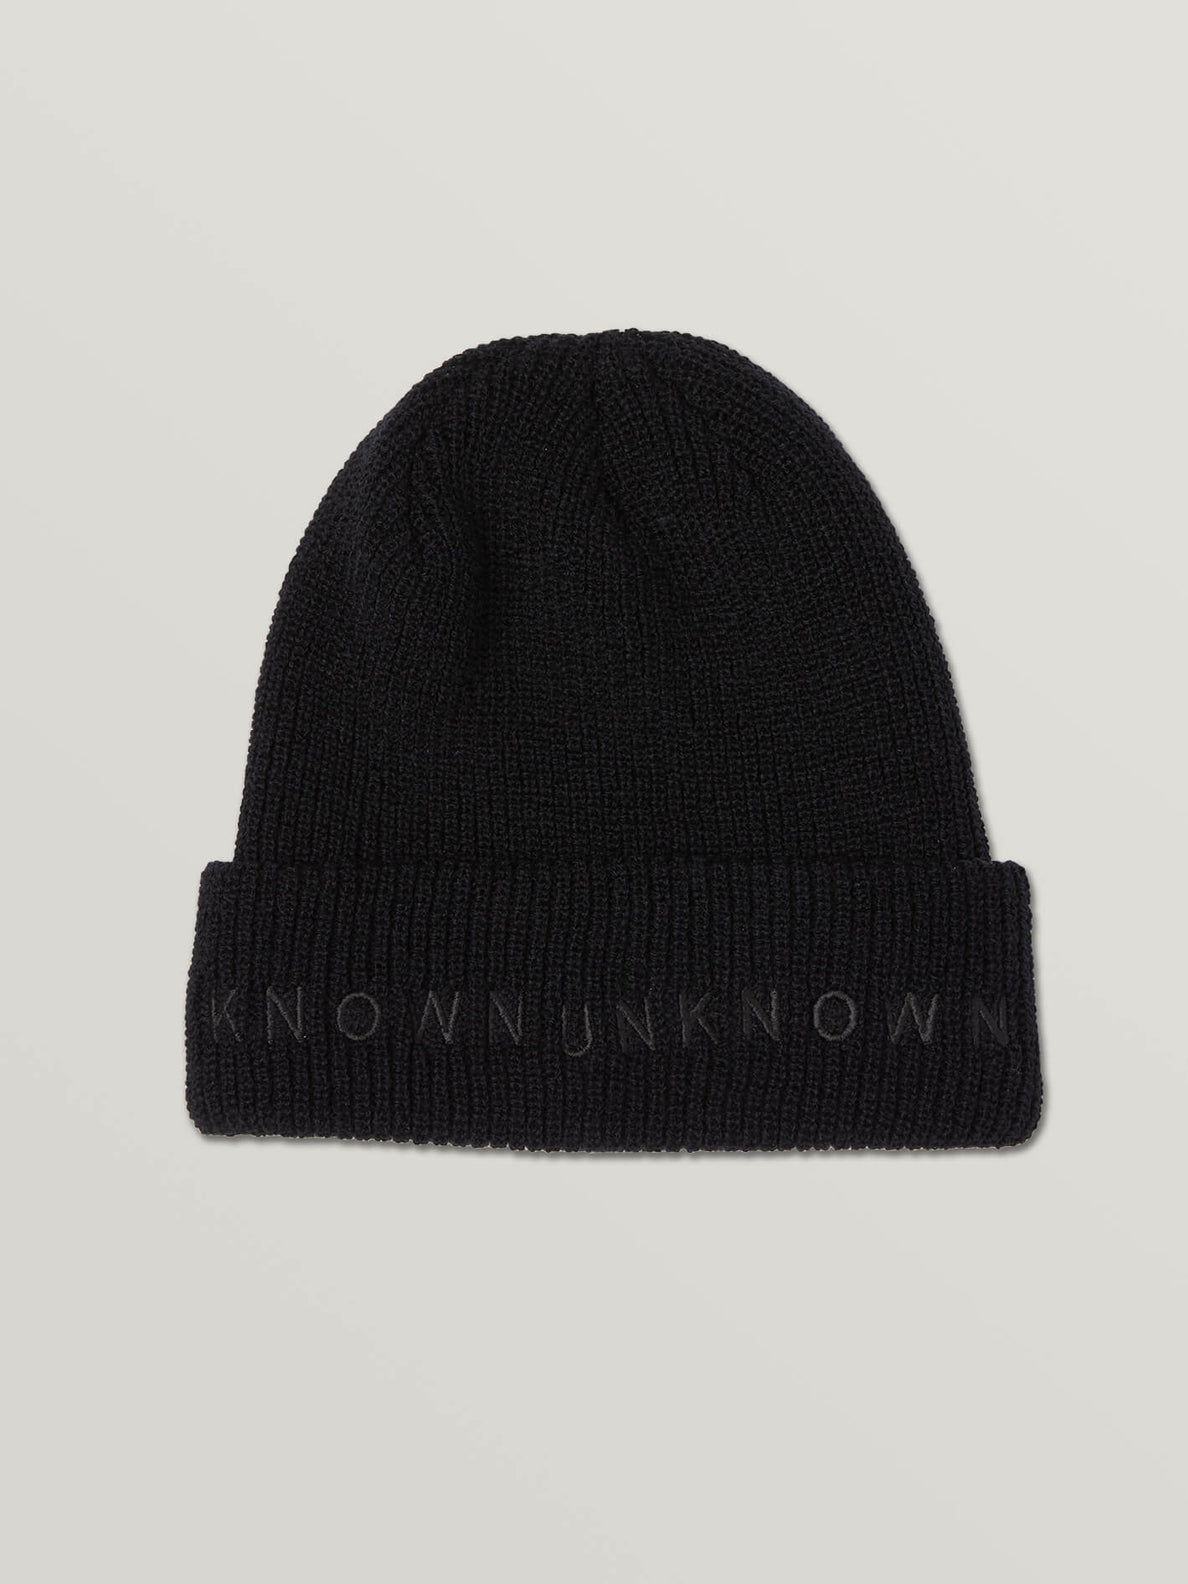 Rogan Gregory X Volcom Known Beanie In Black, Alternate View